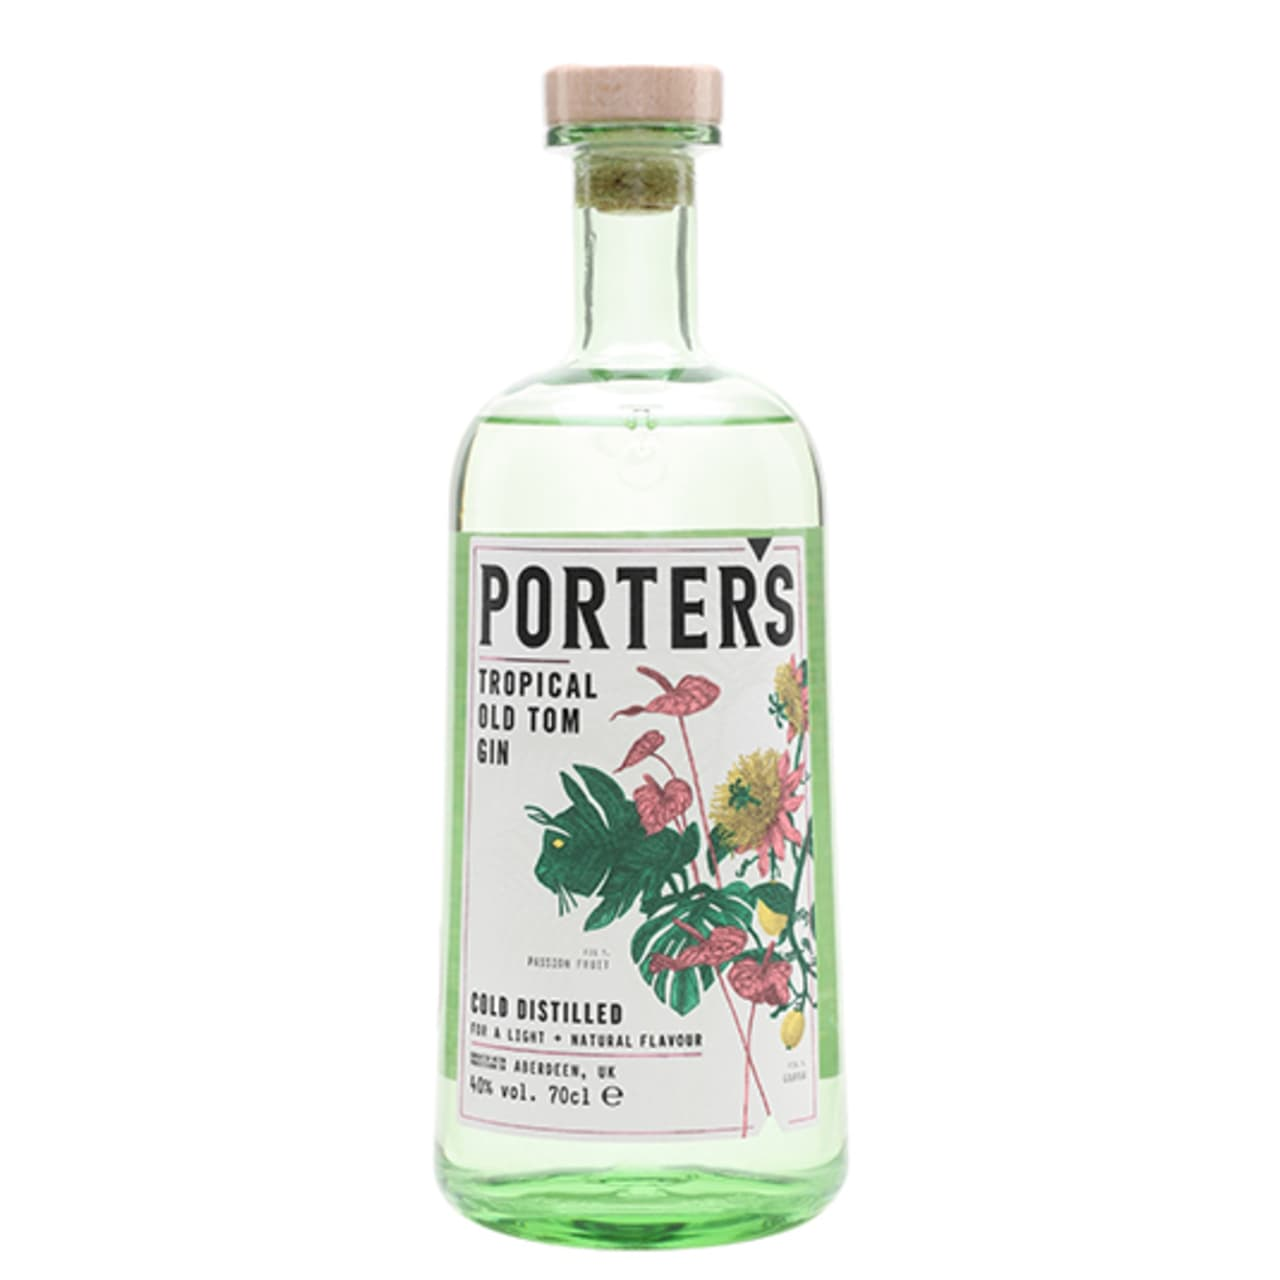 Product Image - Porter's Tropical Old Tom Gin